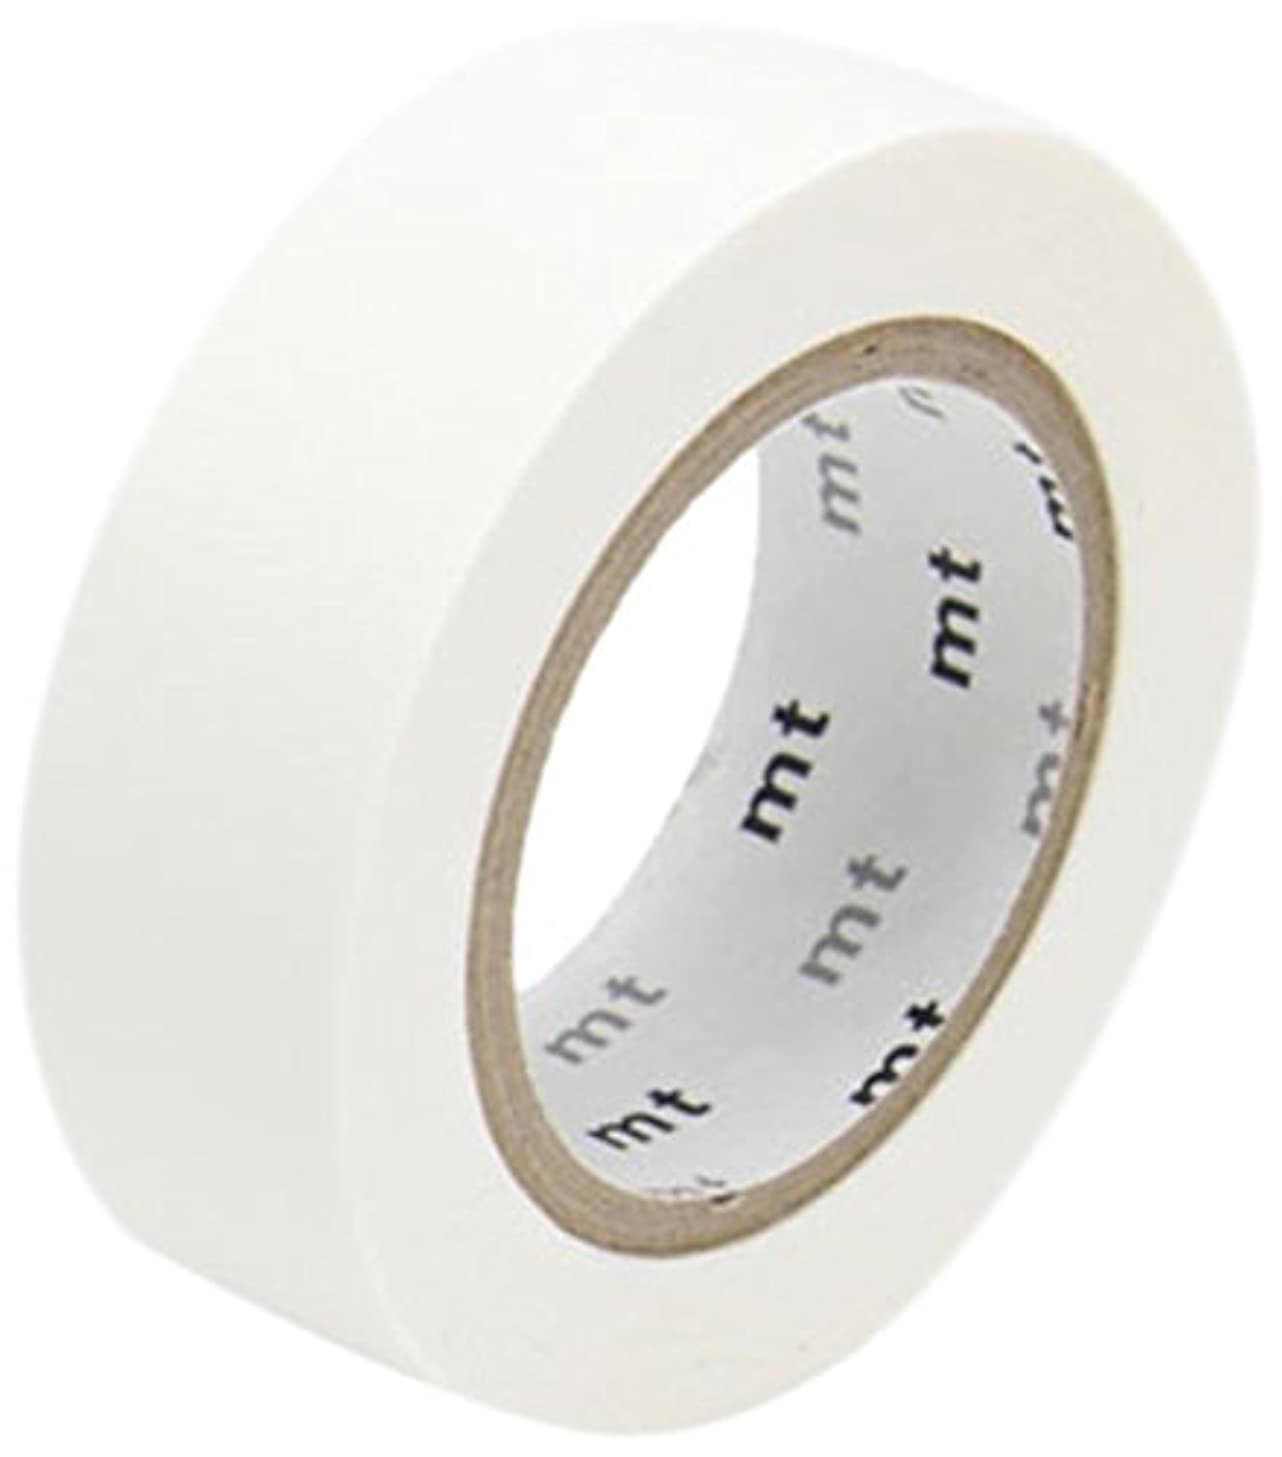 mt Washi Paper Masking Tape: 3/5 in. x 33 ft. (Matte White)